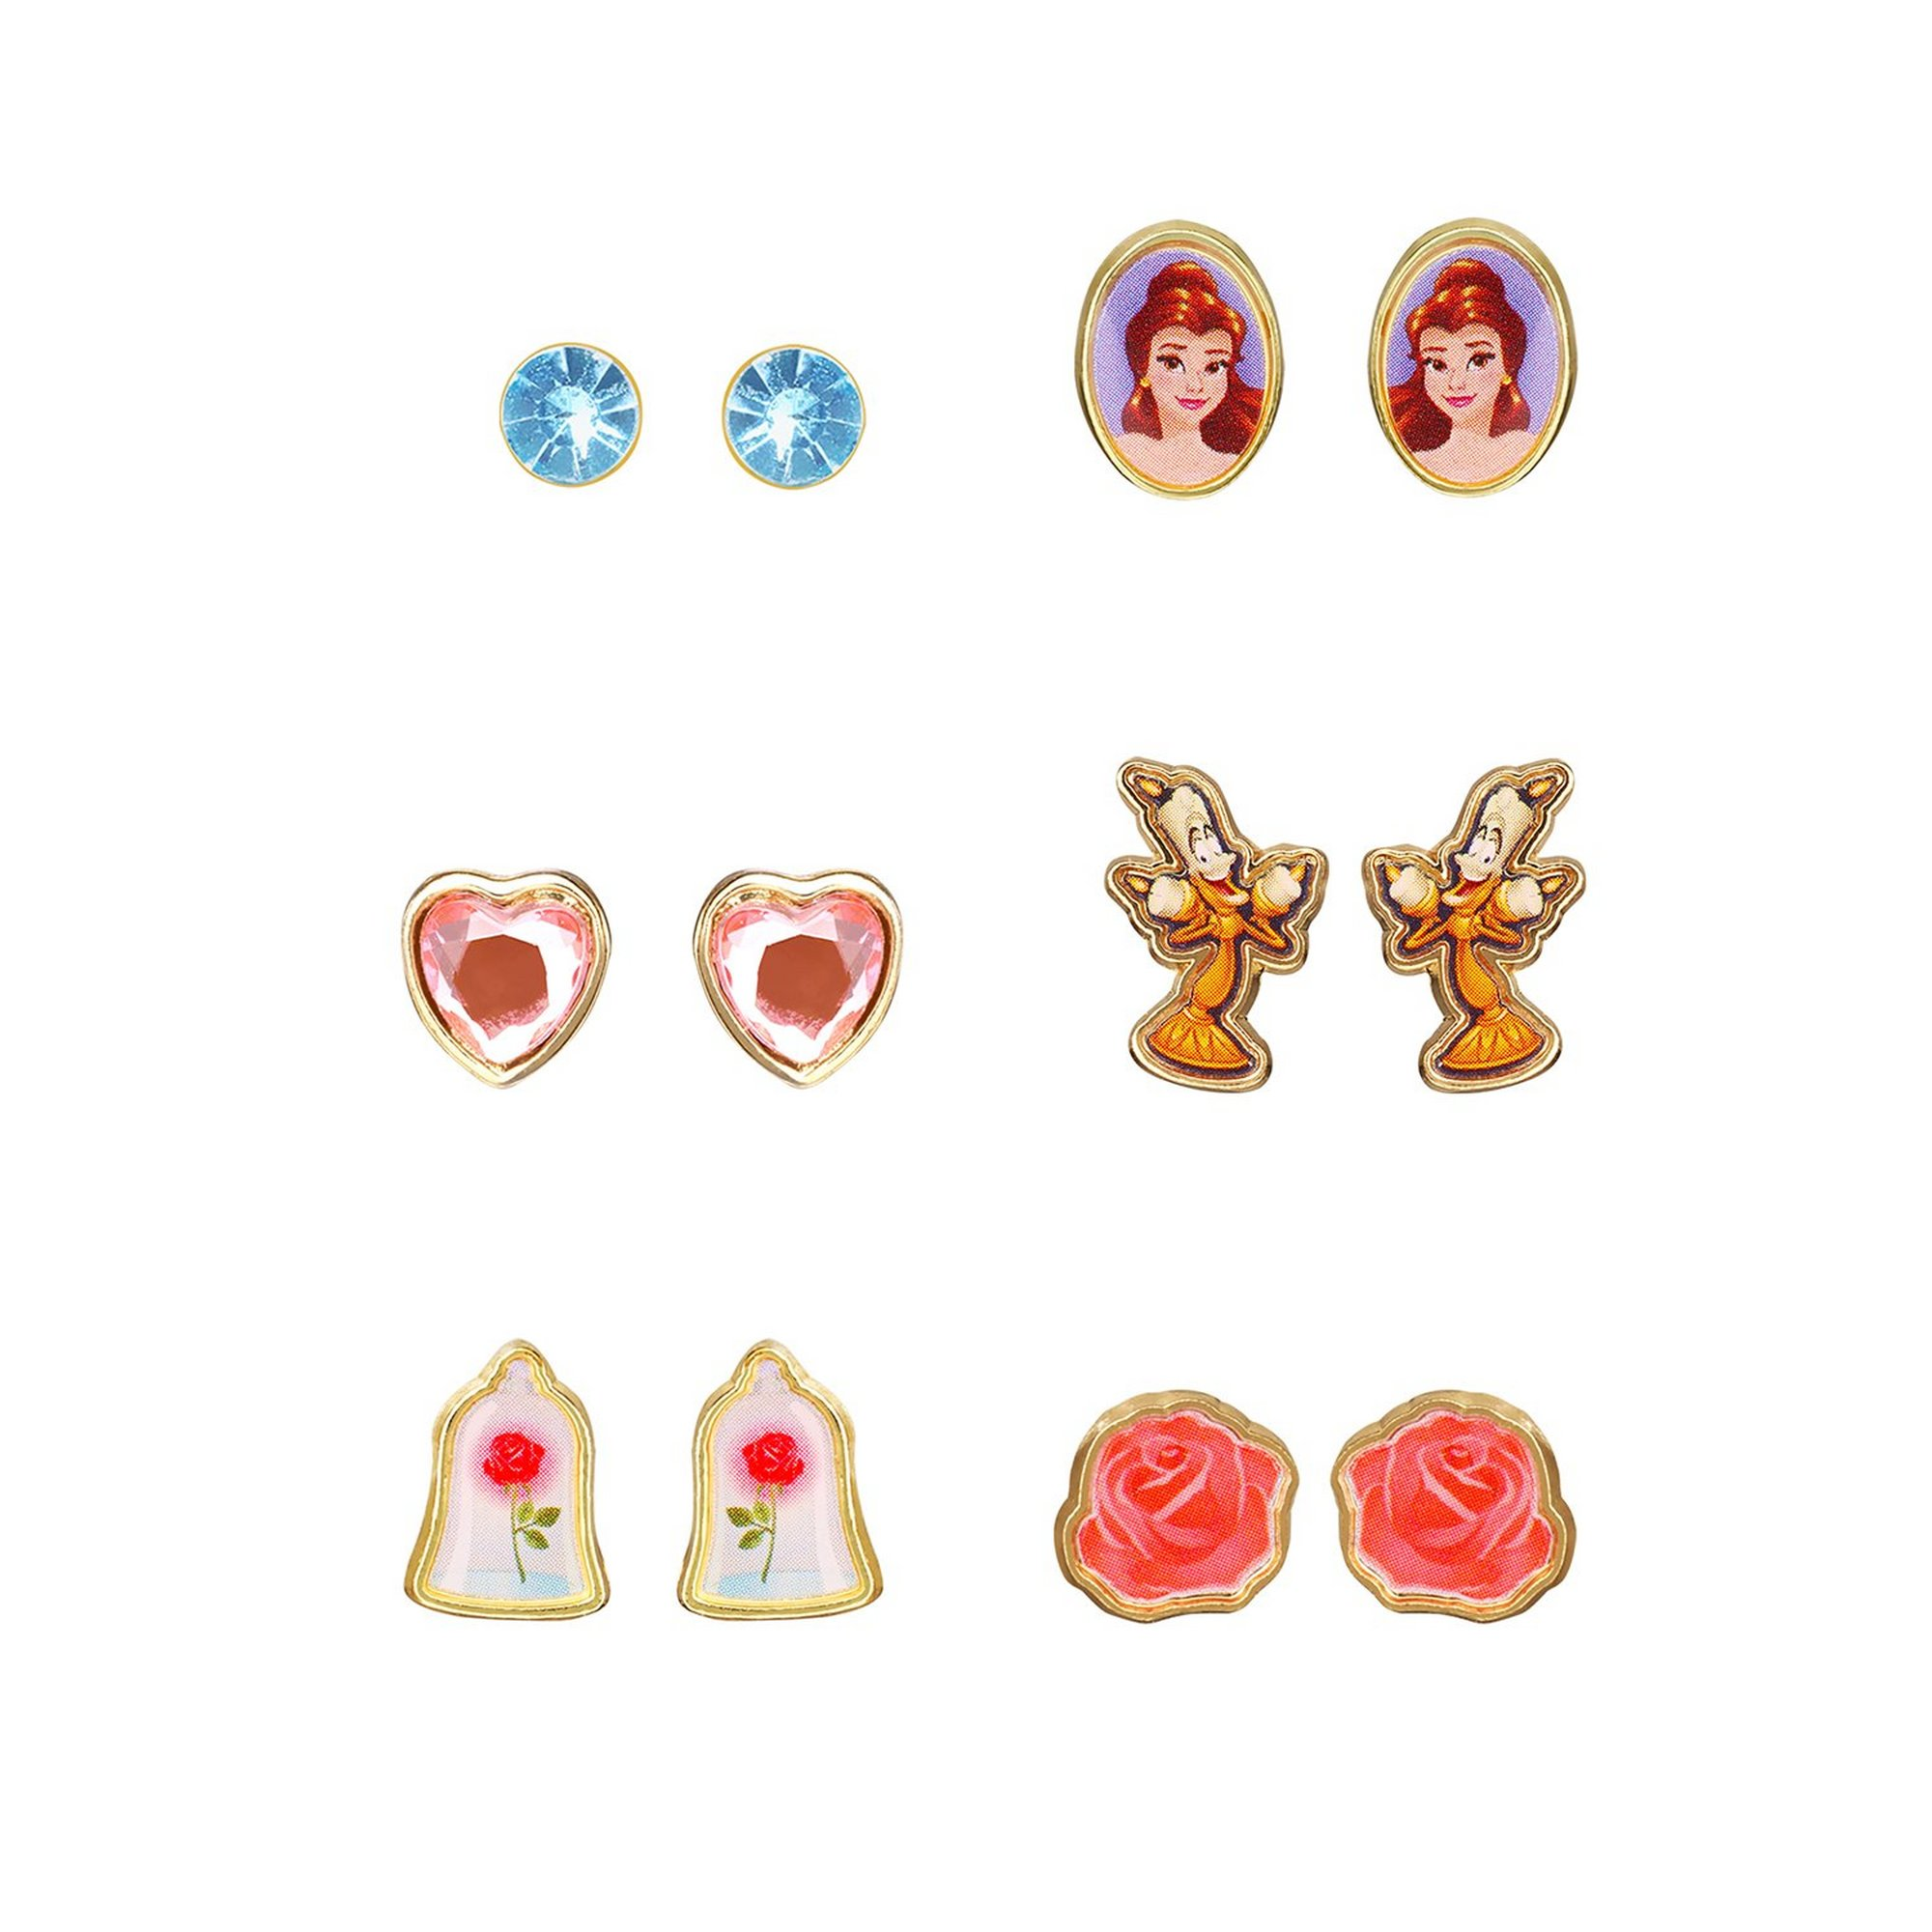 Image of Disney Beauty and The Beast 6-Piece Earring Set